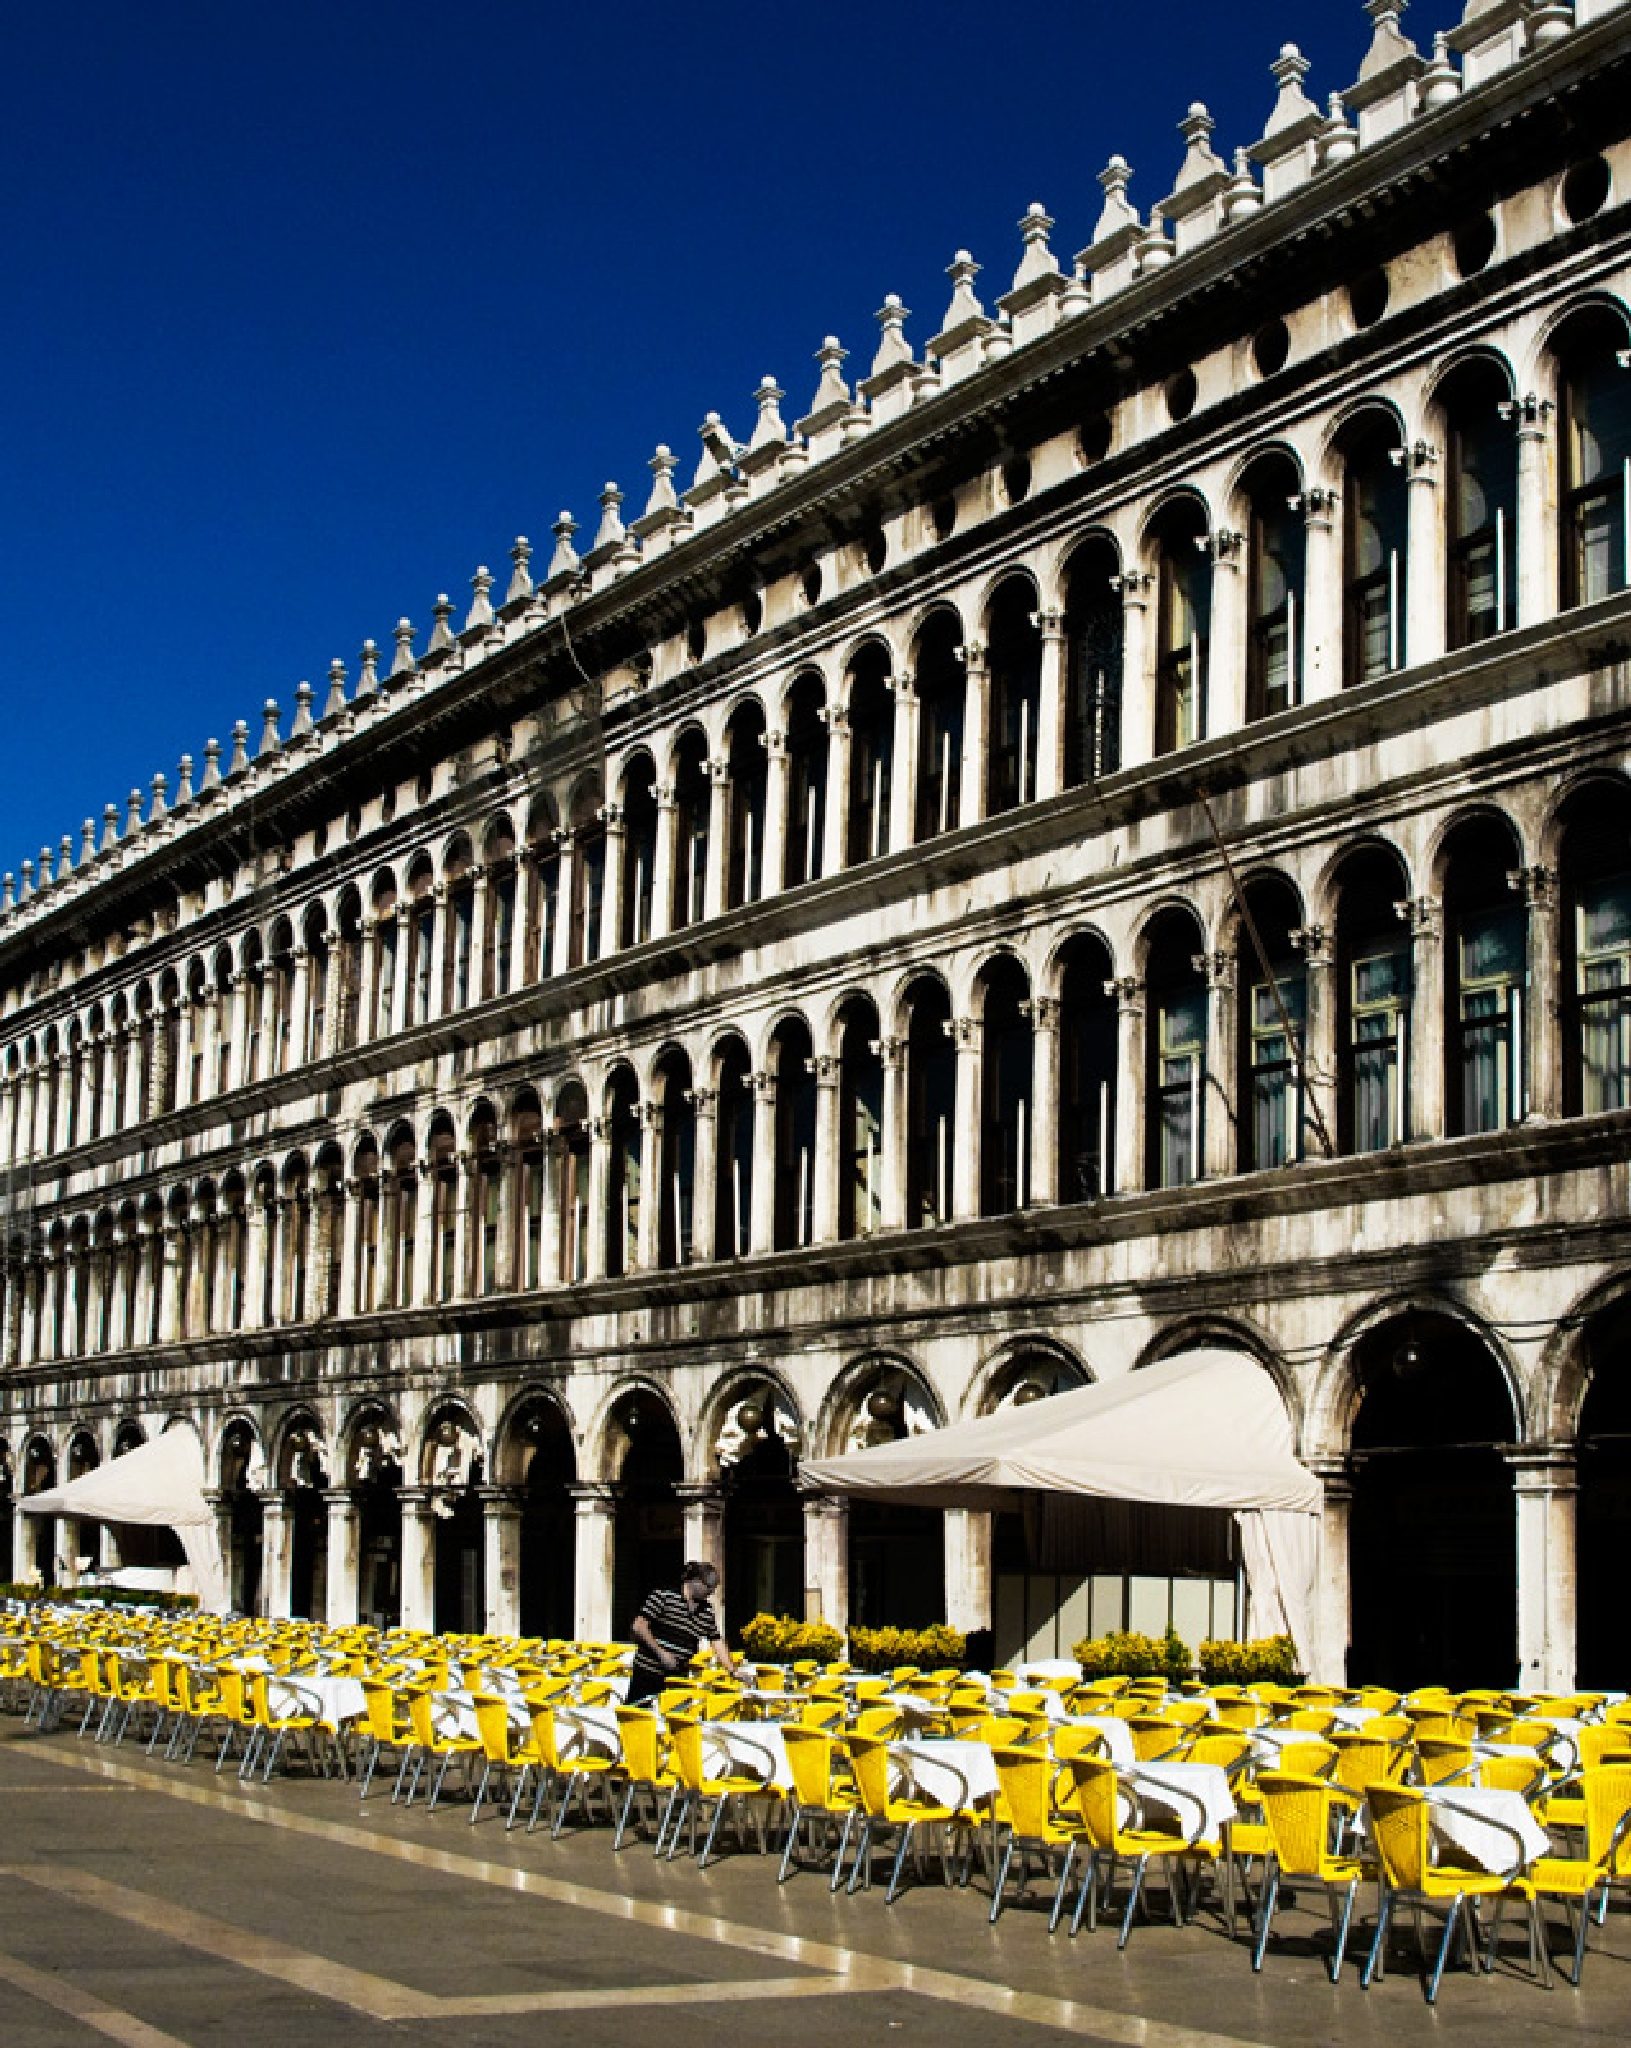 Piazza San Marco by MadeleineGuenette